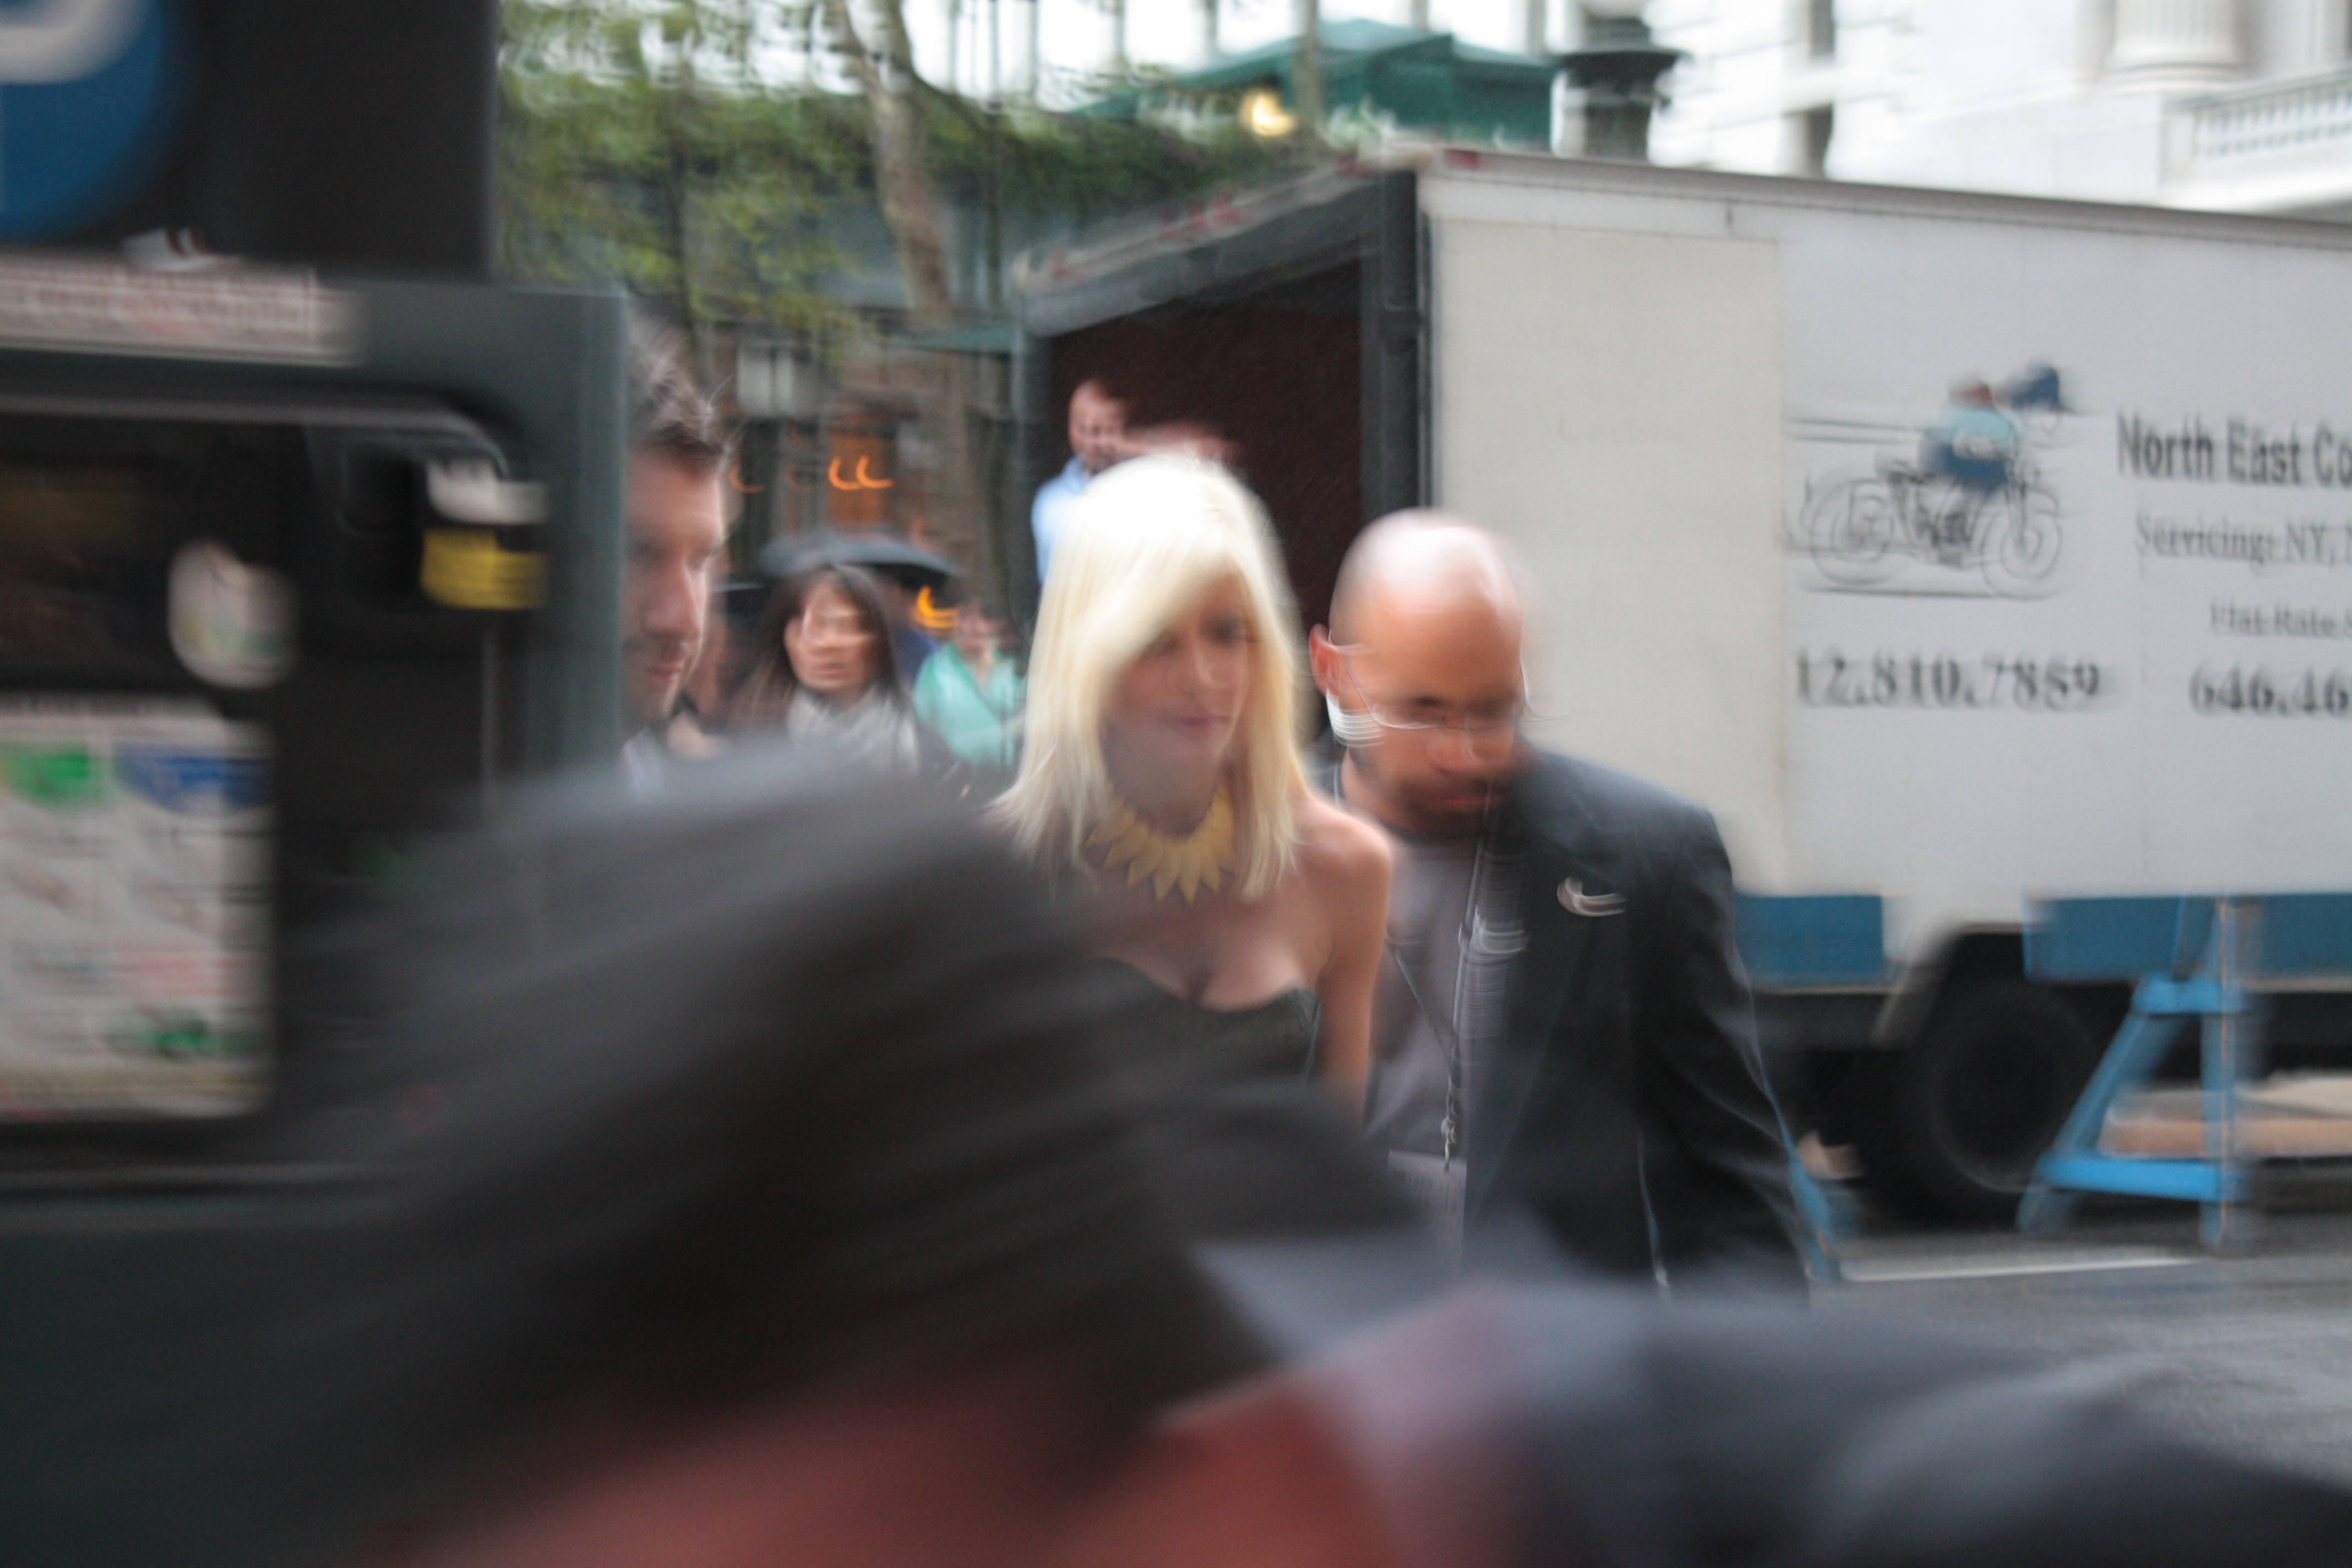 Tori Spelling During New york Fashion Week. Photo Credit: Social Vixen